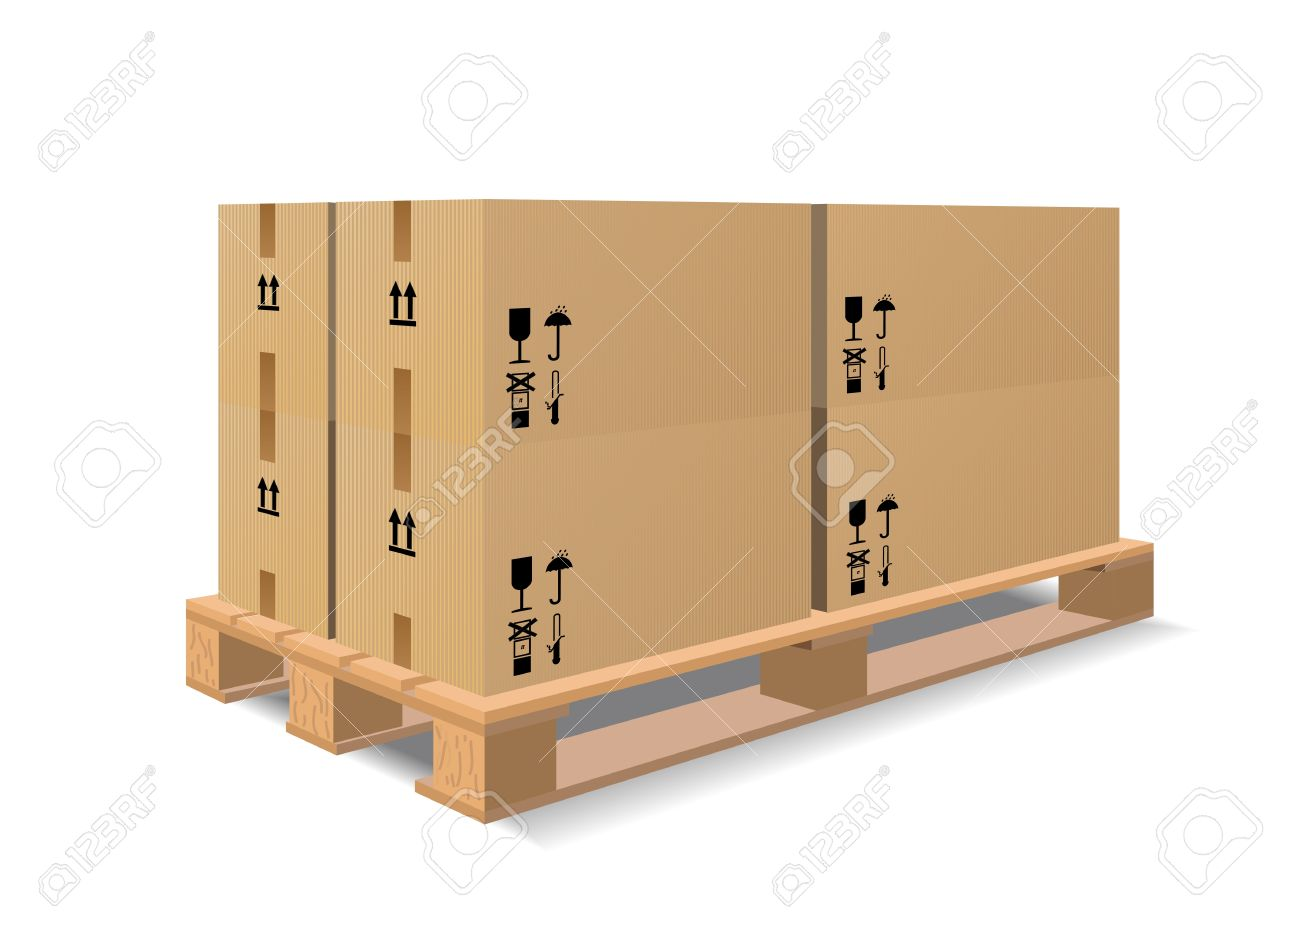 A wooden pallet with boxes are shown in the image. - 9275070